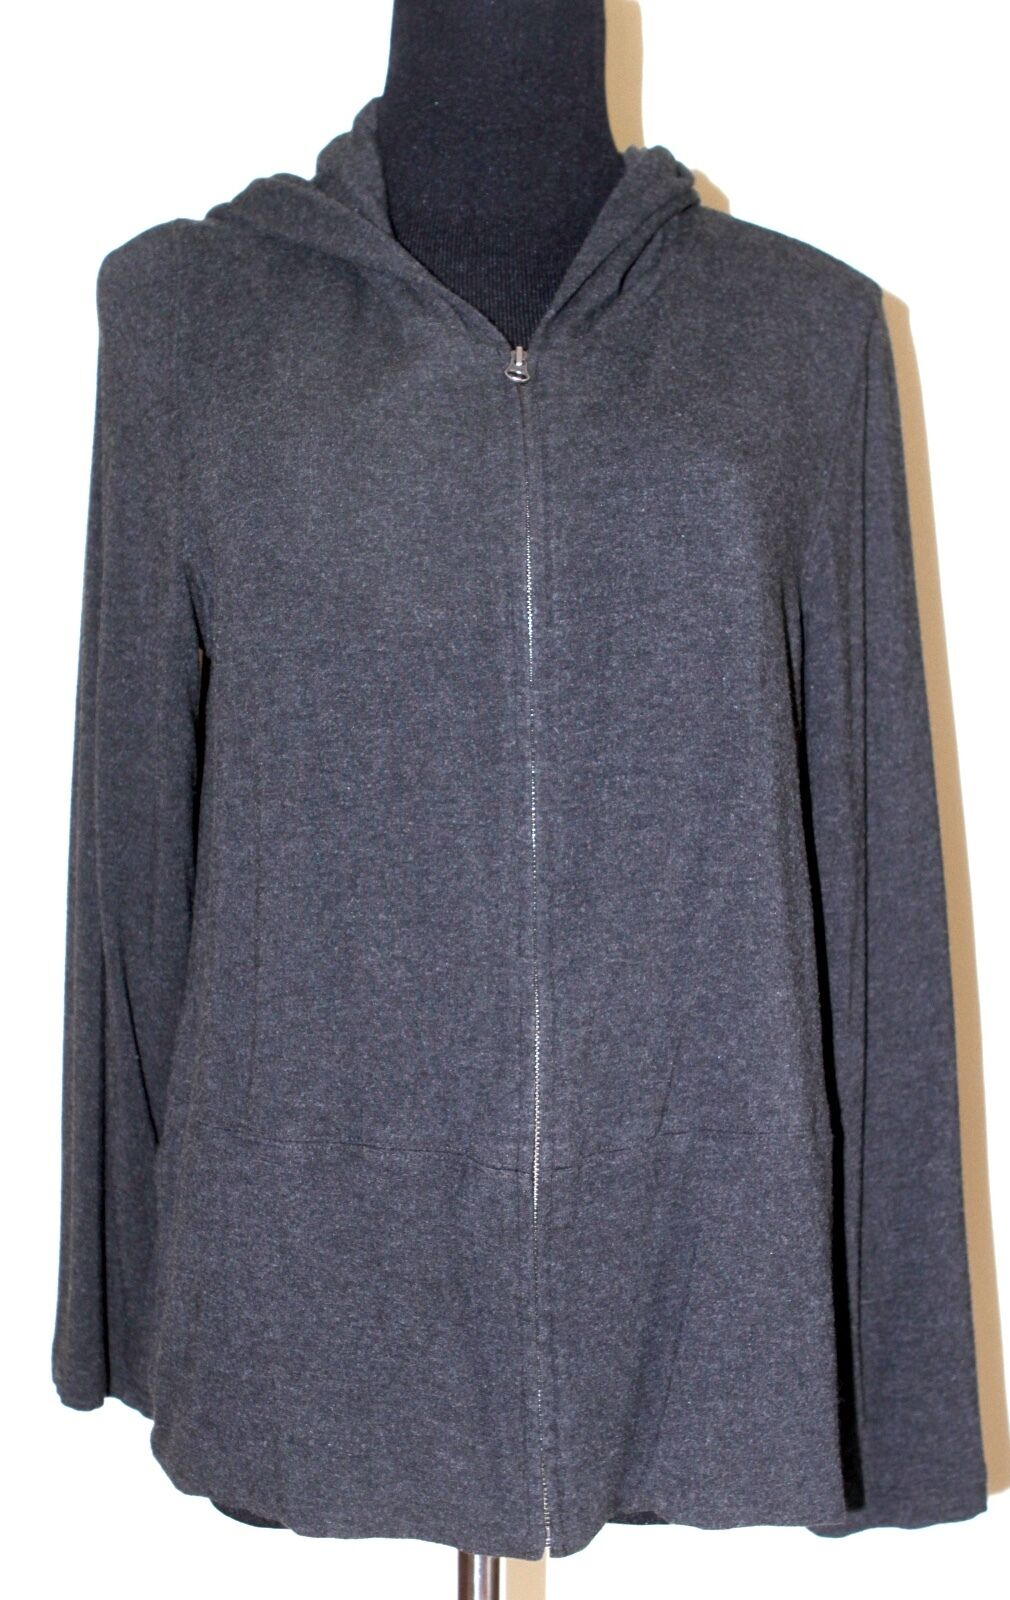 Eileen Fisher sz L Charcoal Hoodie Hooded Viscose Jacket - excellent condition